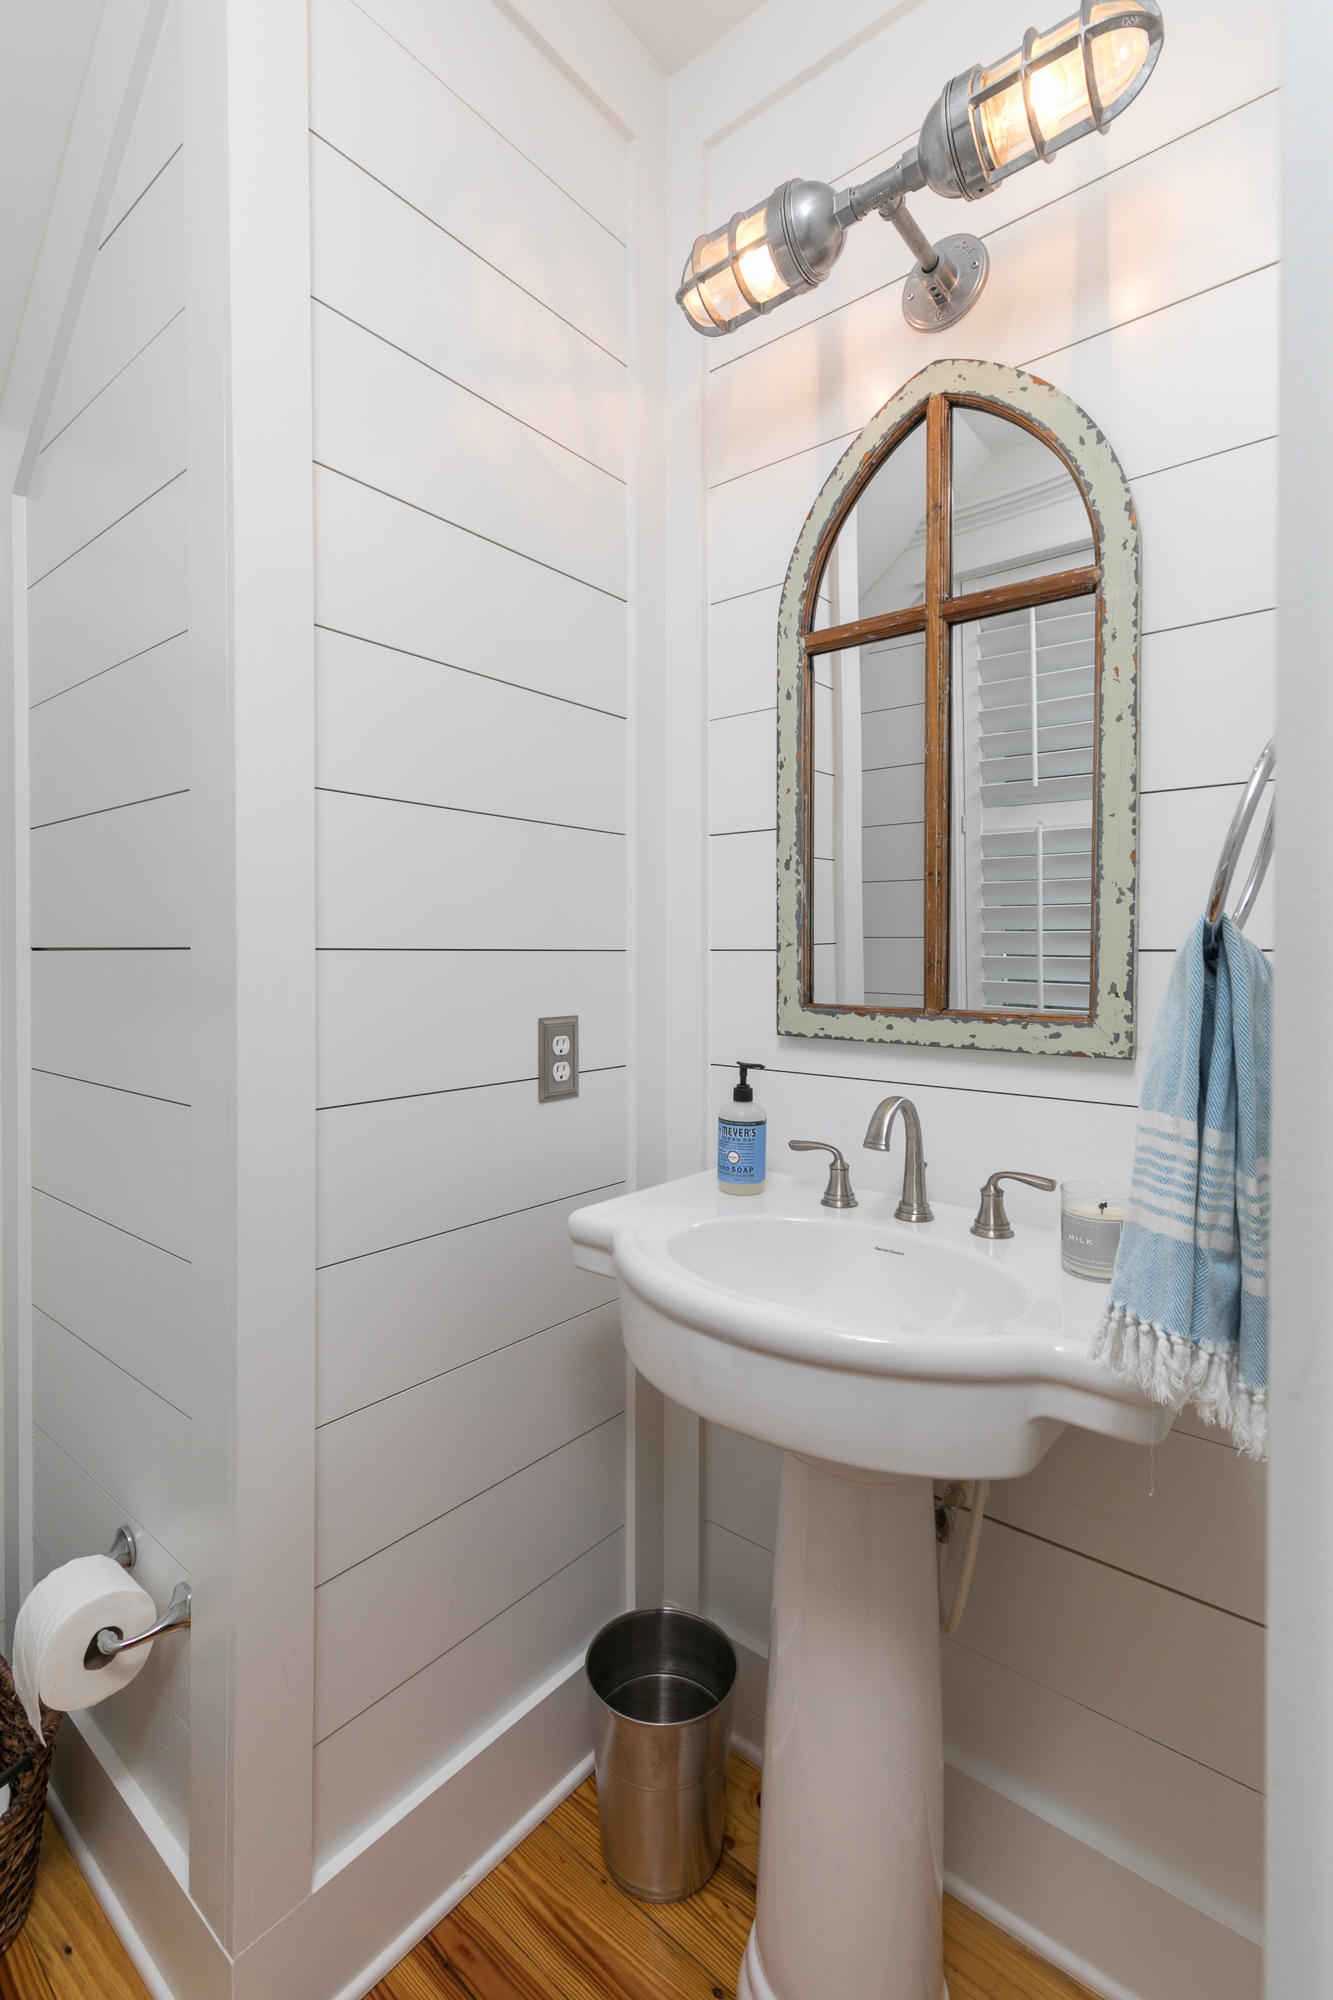 Wexford Park Homes For Sale - 1133 Wexford, Mount Pleasant, SC - 8